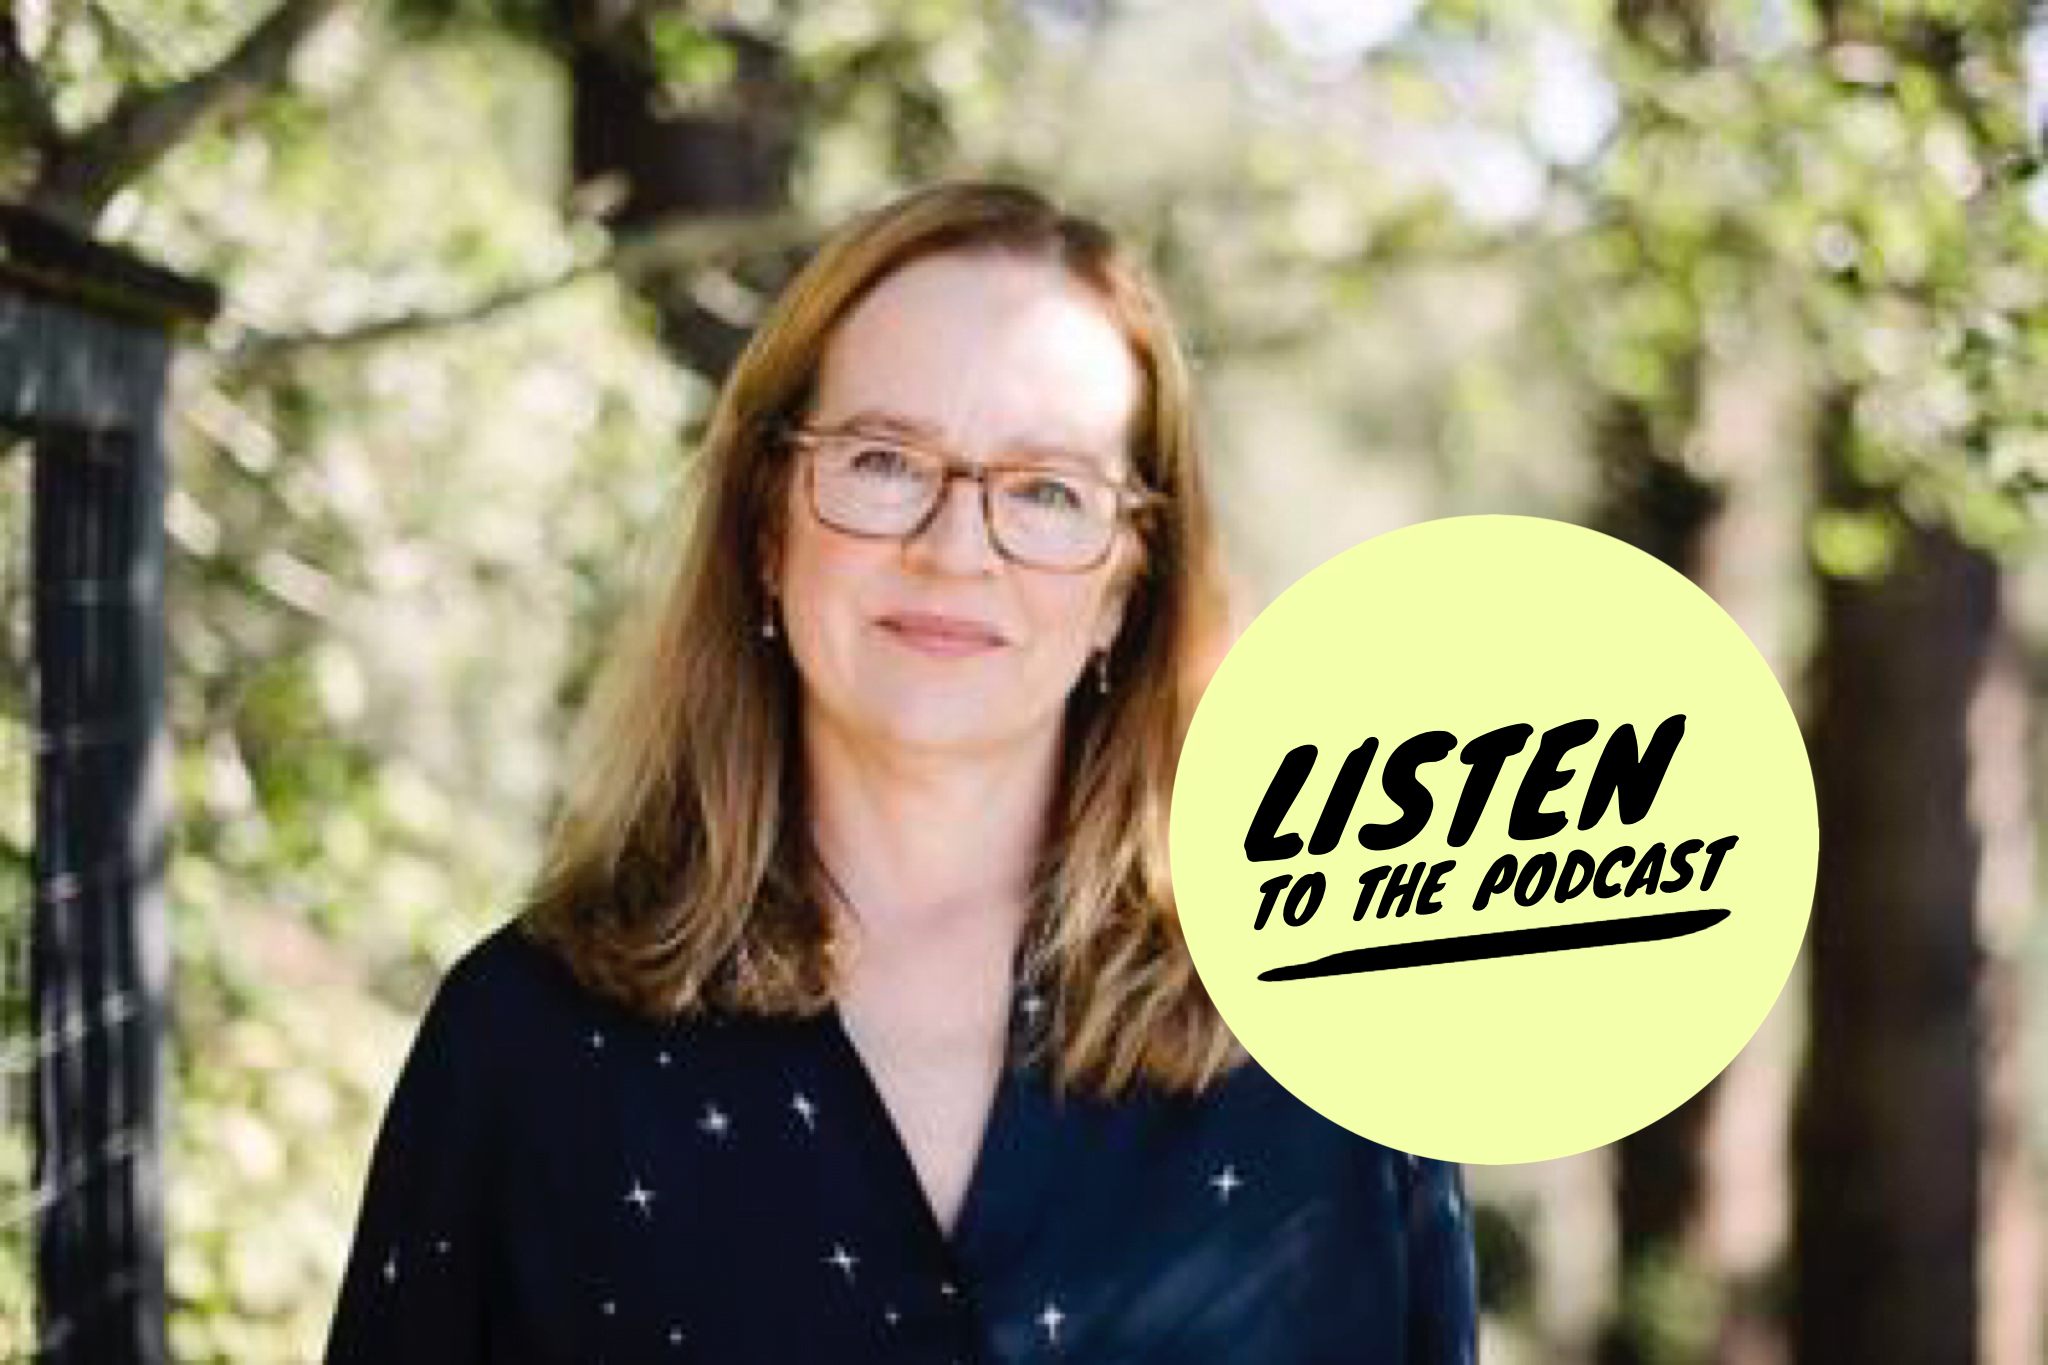 Podcast: Author  Paula Saunders Talks About the Complexities of Families and Modern America